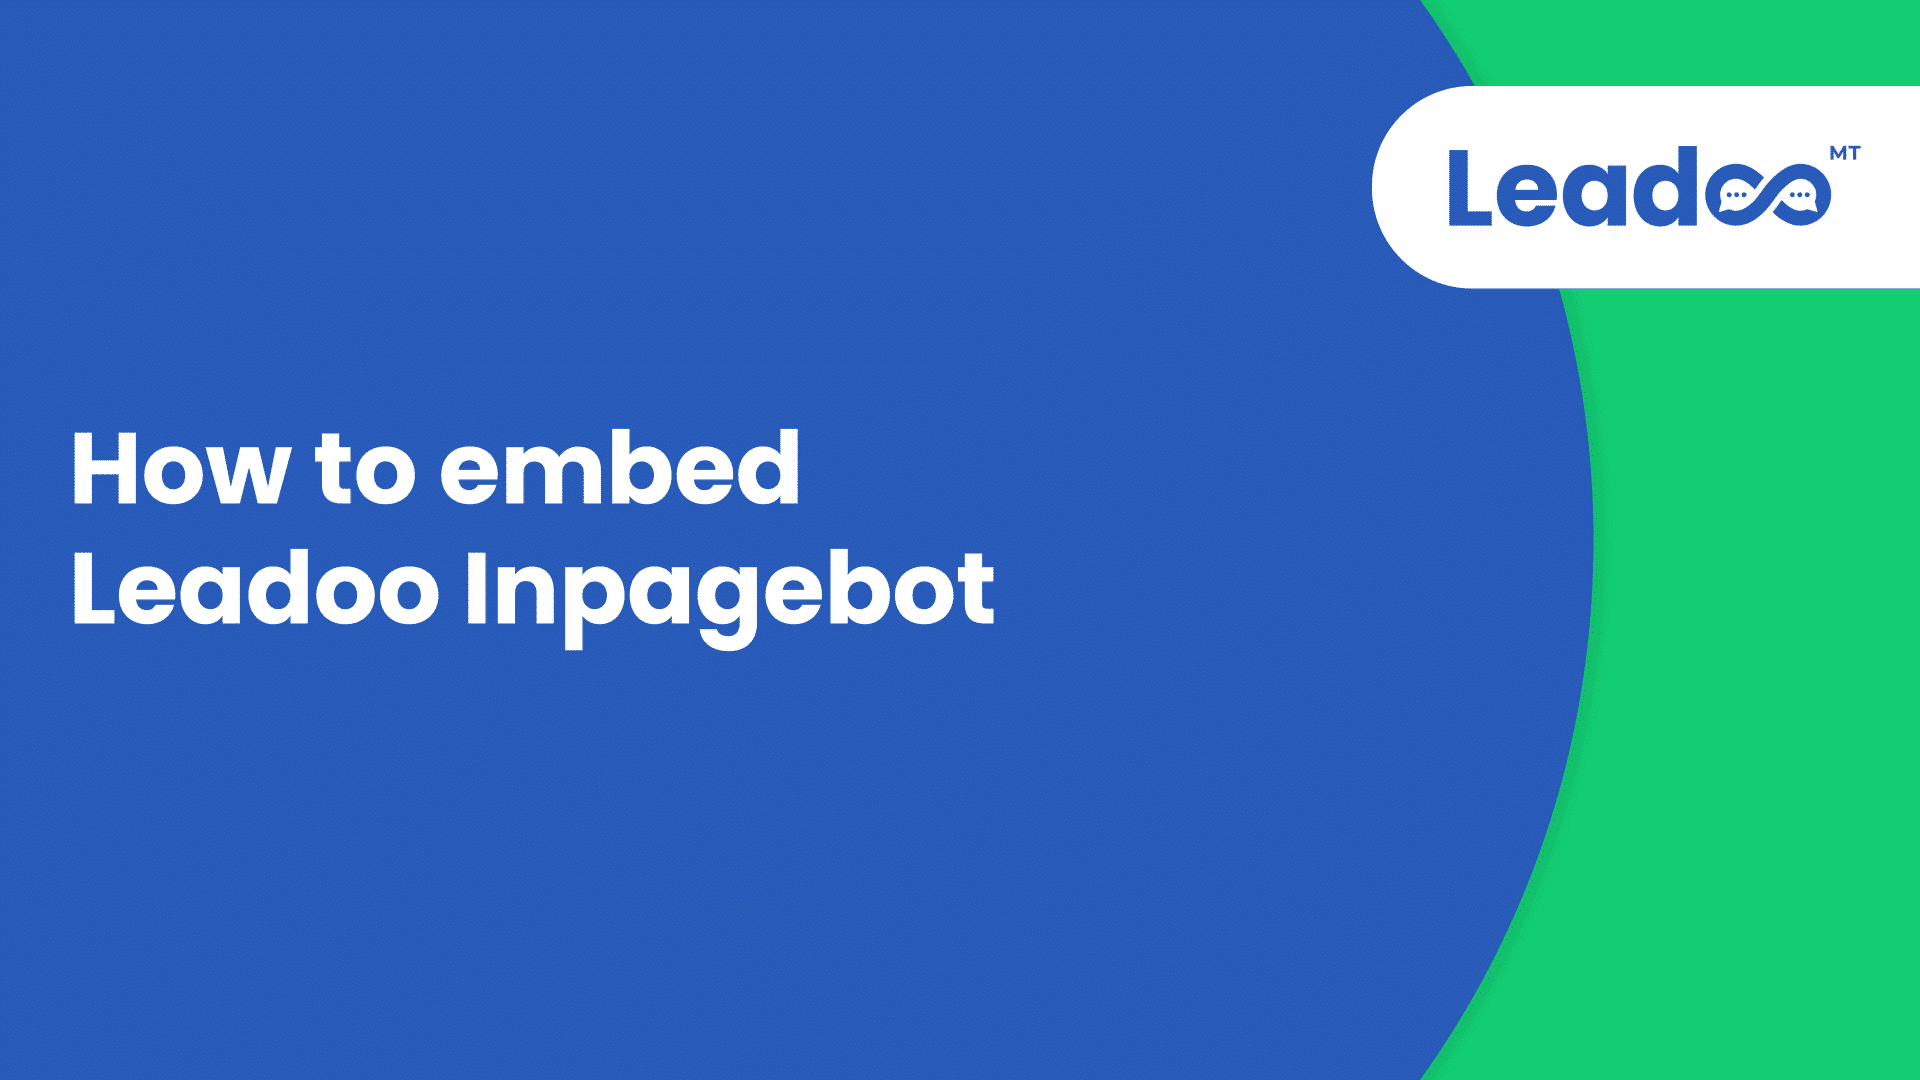 How to embed Leadoo Inpagebot.00 00 00 00.Still001 Help Center Getting started with Leadoo